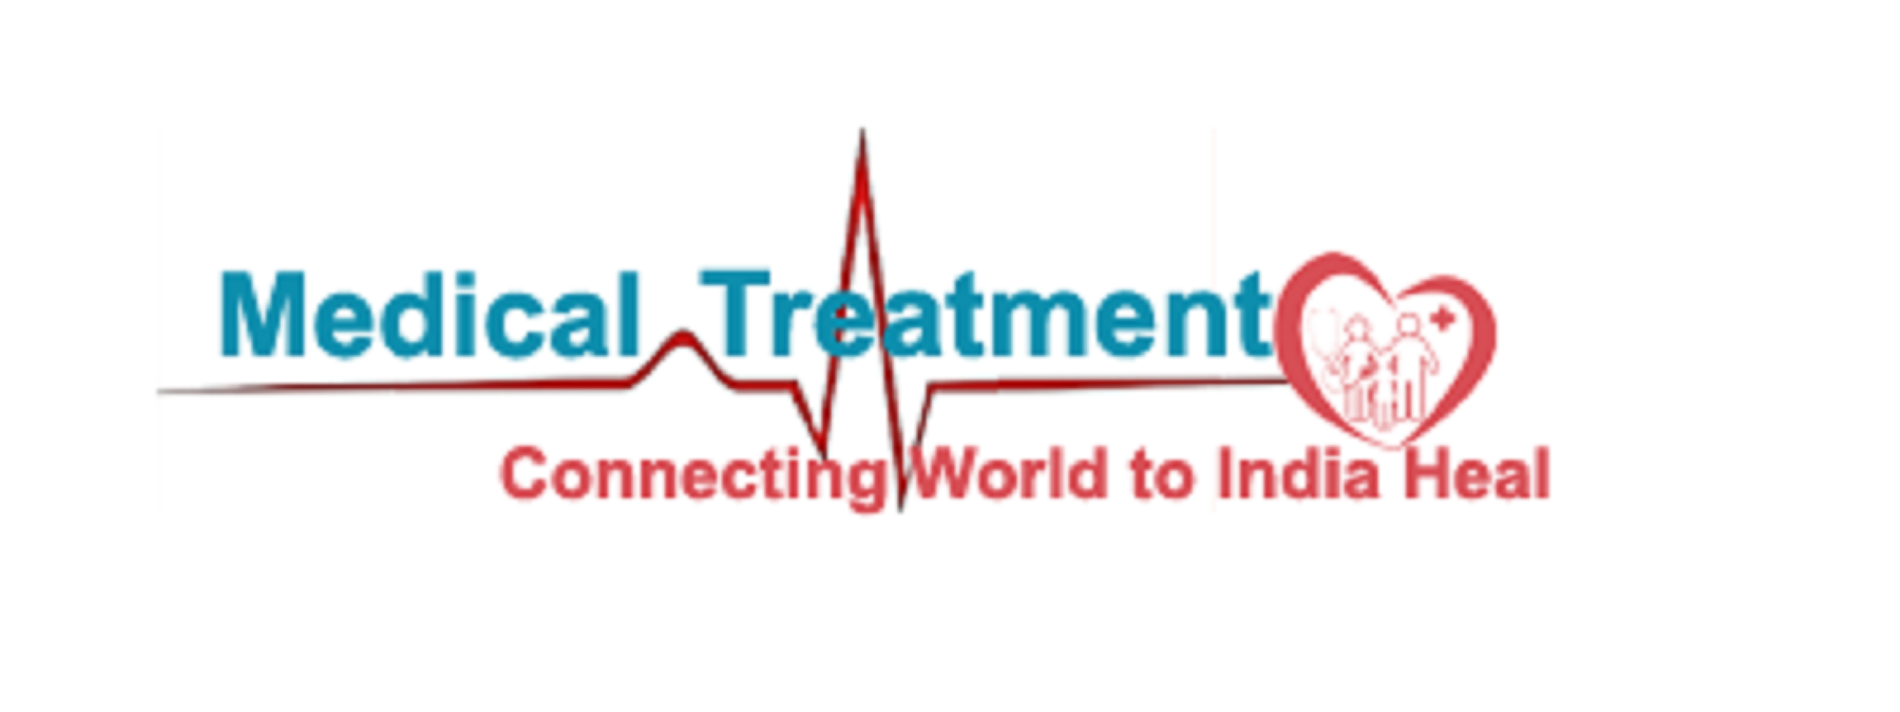 medical tourism & treatment in india